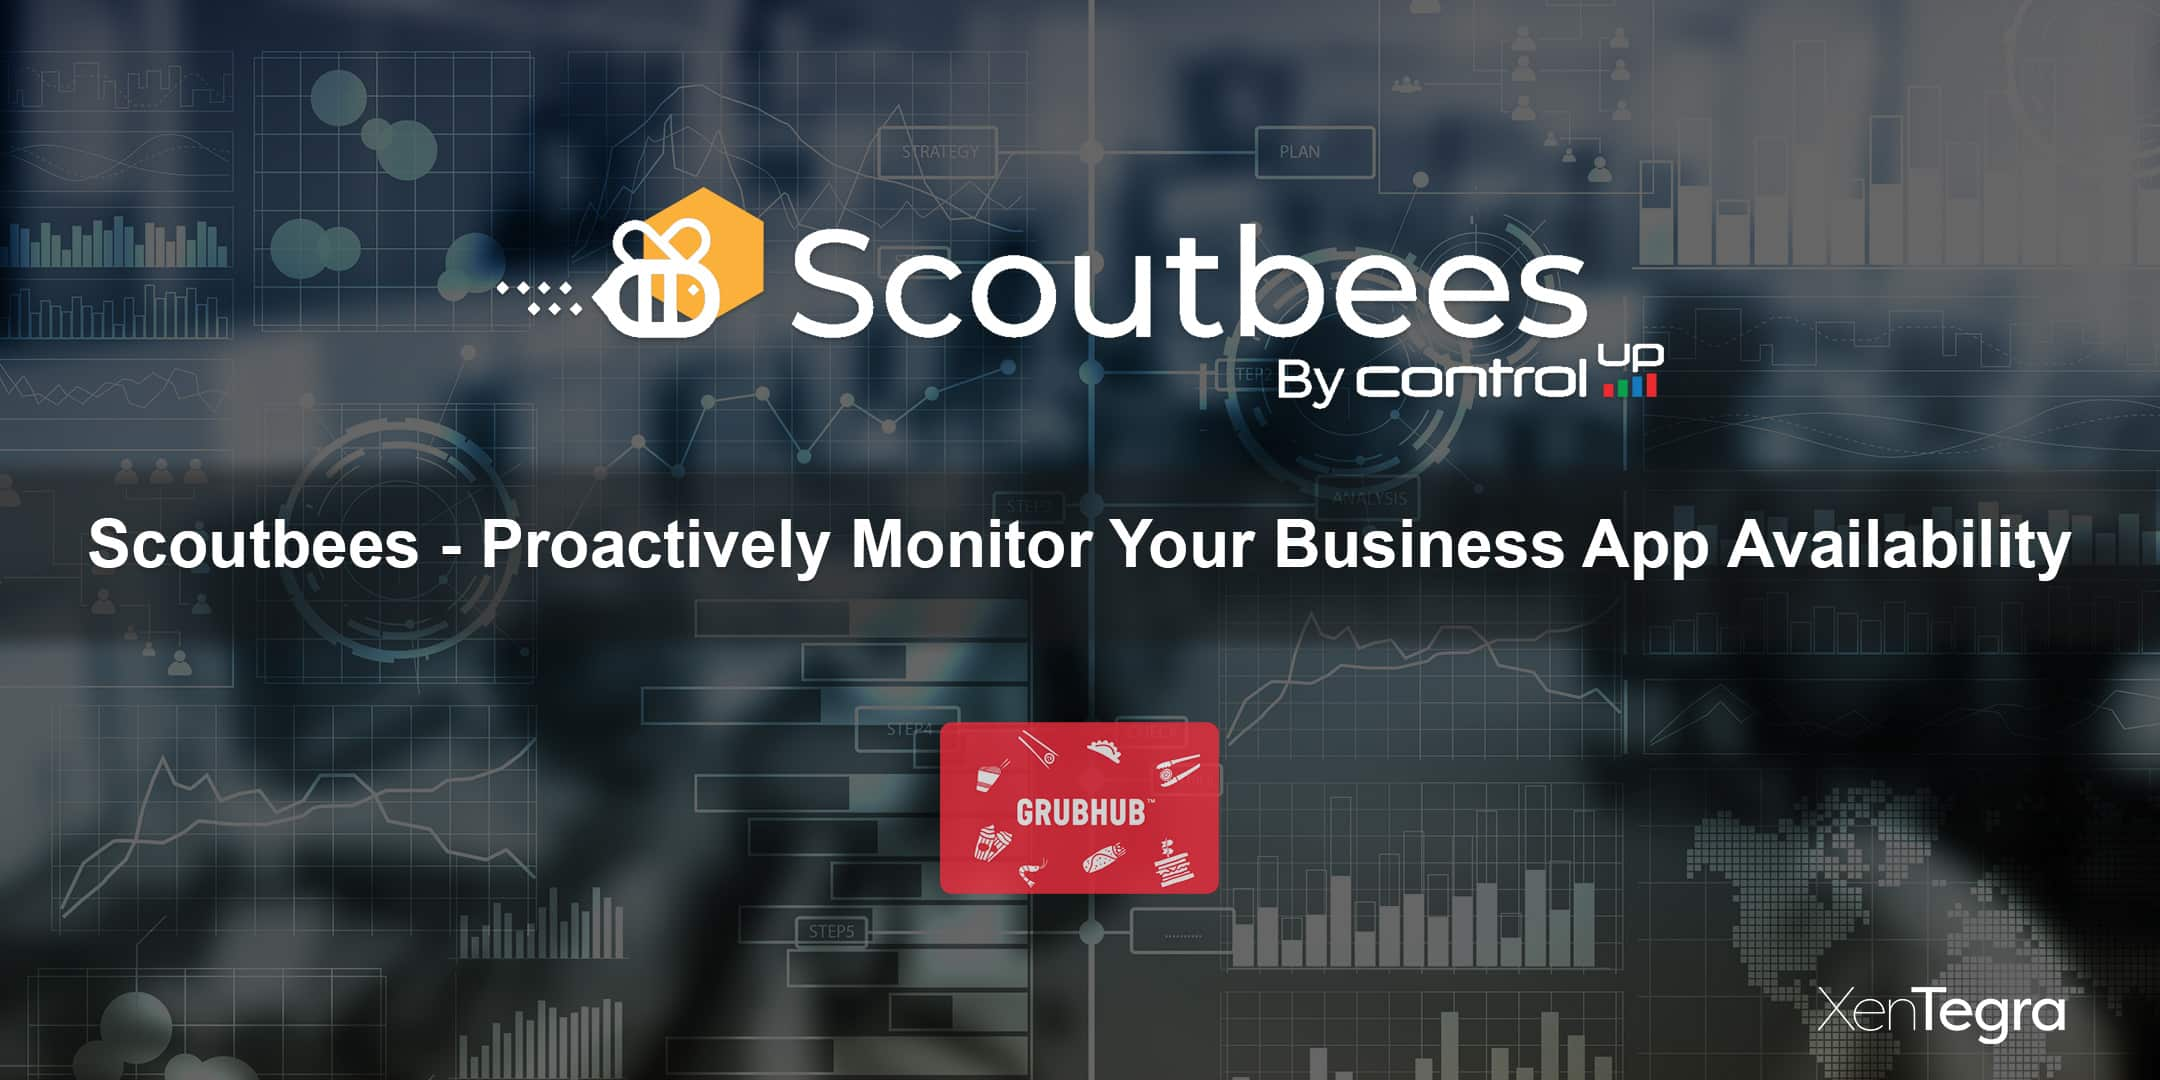 Scoutbees - Proactively Monitor Your Business App AvailabilityScoutbees - Proactively Monitor Your Business App AvailabilityScoutbees - Proactively Monitor Your Business App AvailabilityScoutbees - Proactively Monitor Your Business App AvailabilityScoutbees - Proactively Monitor Your Business App AvailabilityScoutbees - Proactively Monitor Your Business App AvailabilityScoutbees - Proactively Monitor Your Business App AvailabilityScoutbees - Proactively Monitor Your Business App Availability